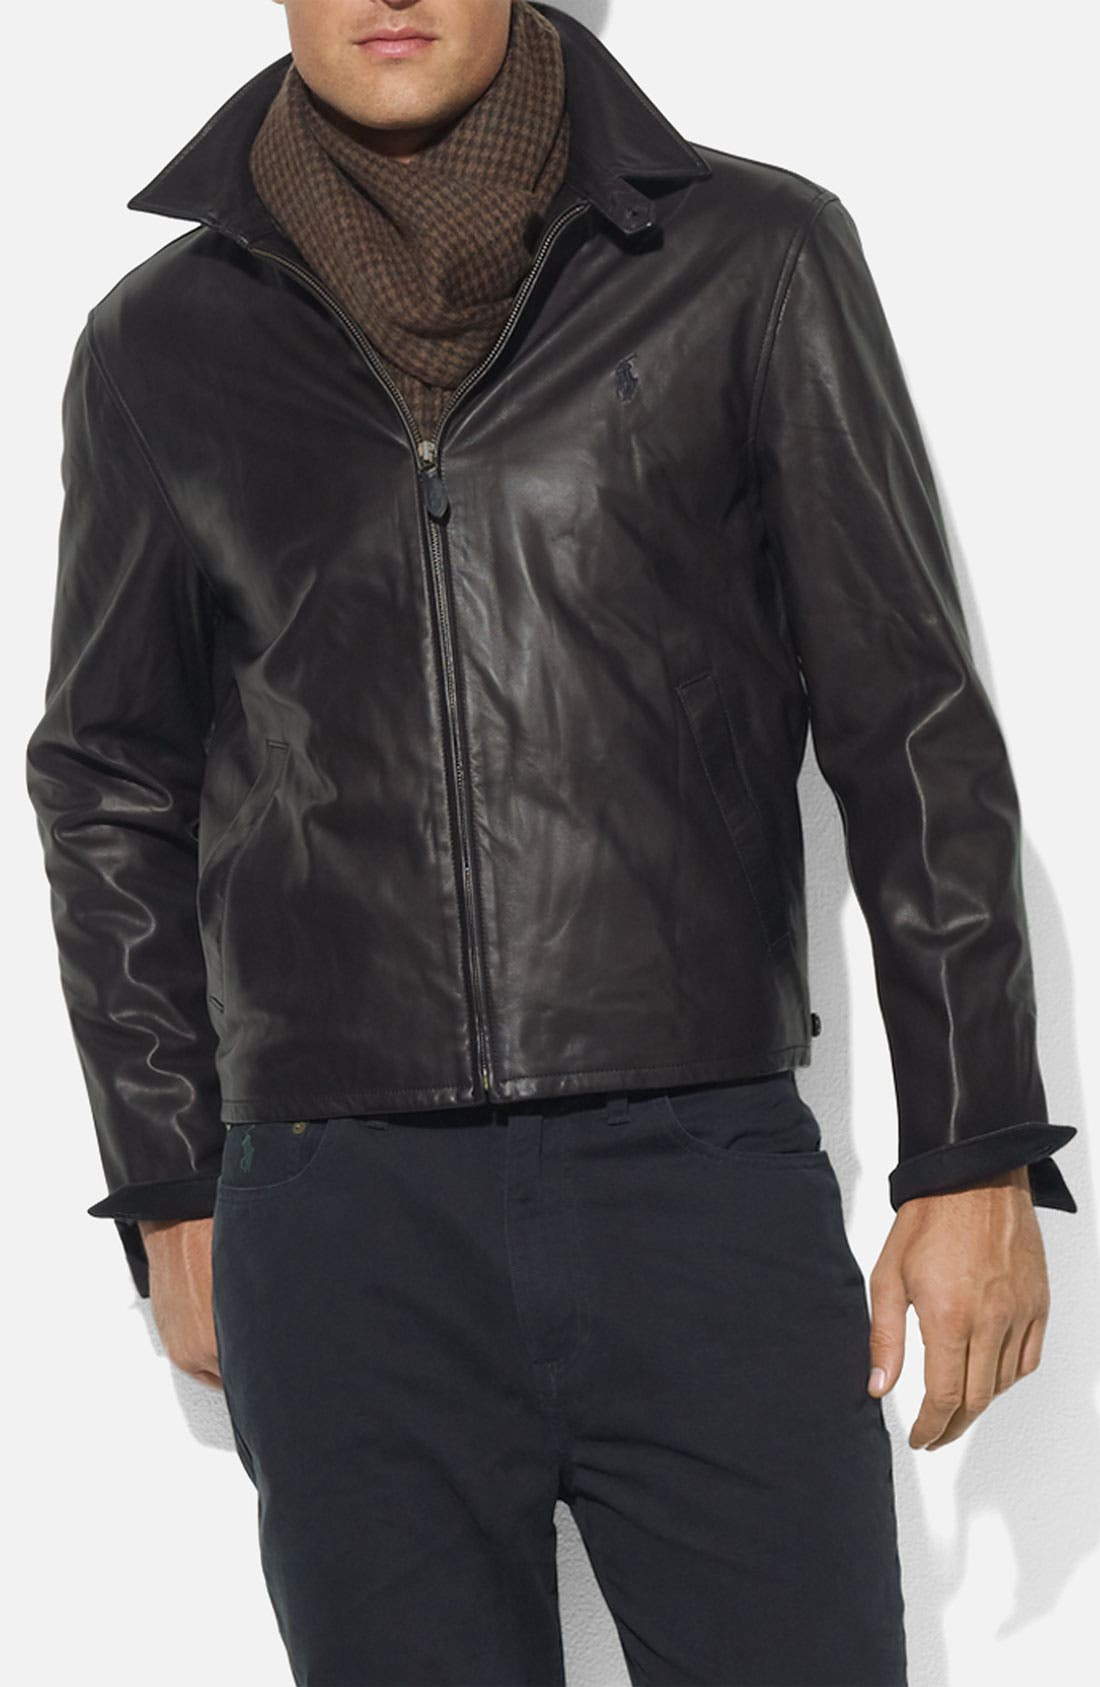 Alternate Image 1 Selected - Polo Ralph Lauren Leather Jacket